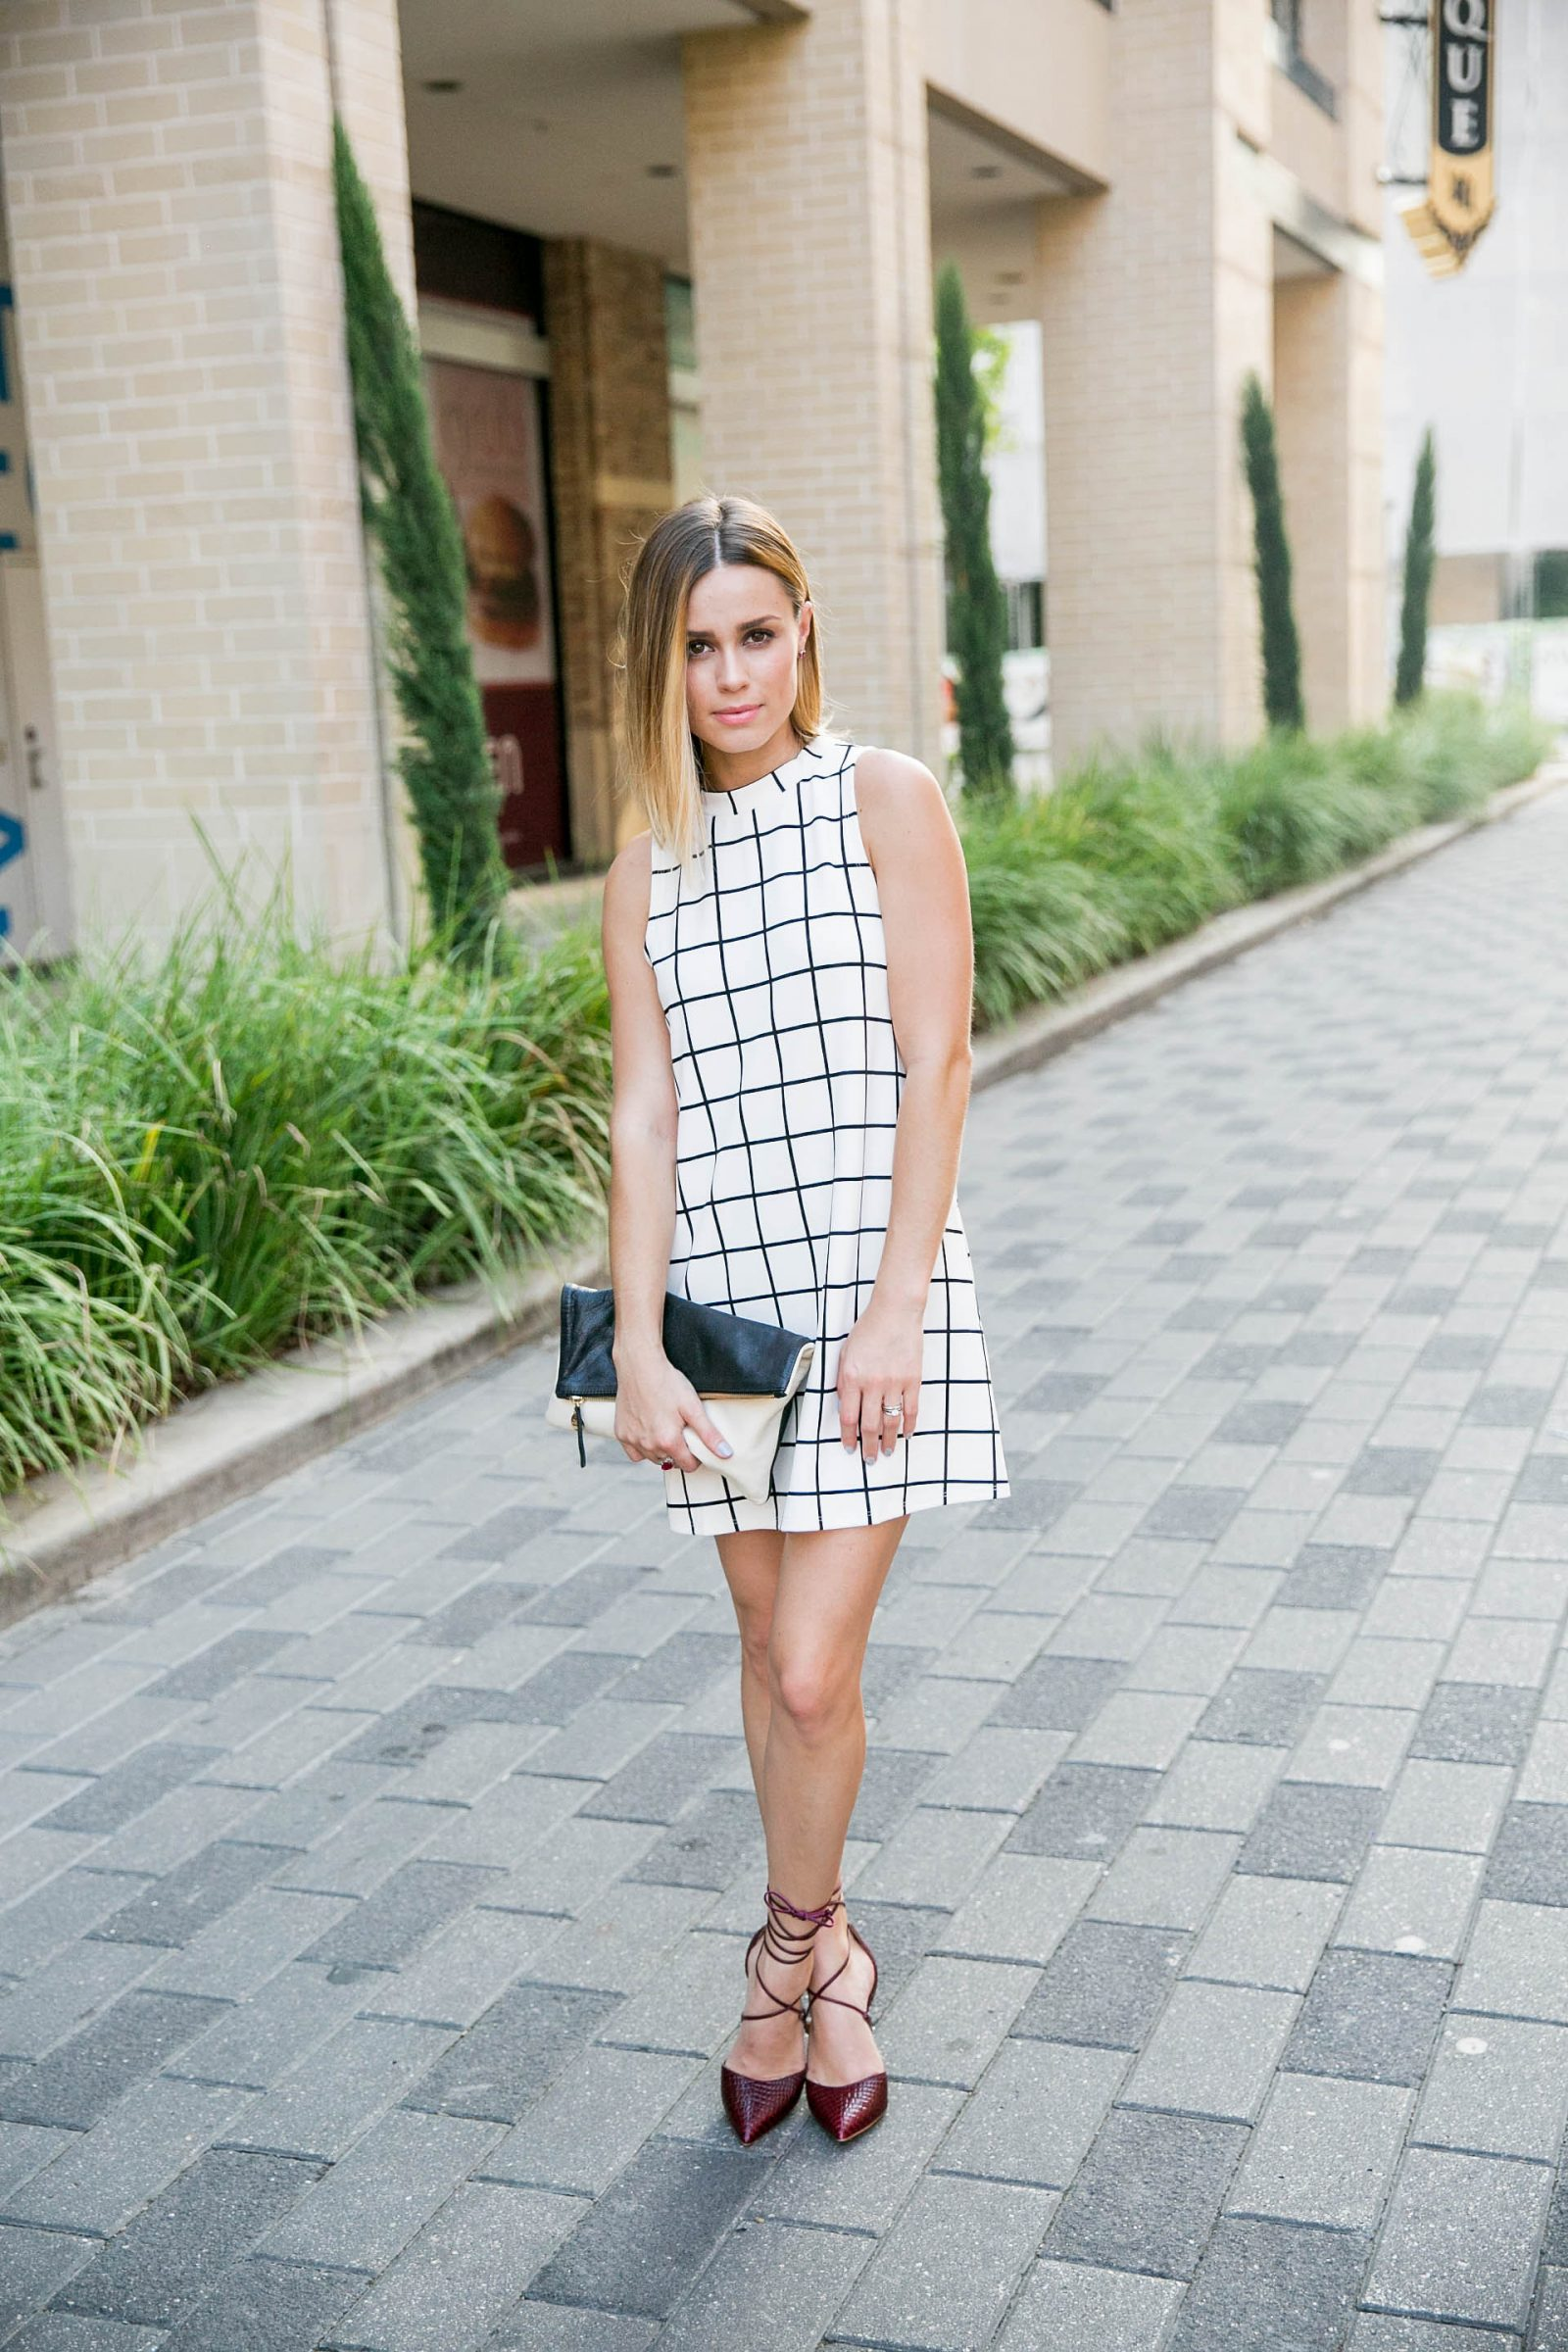 stripped dress outfit